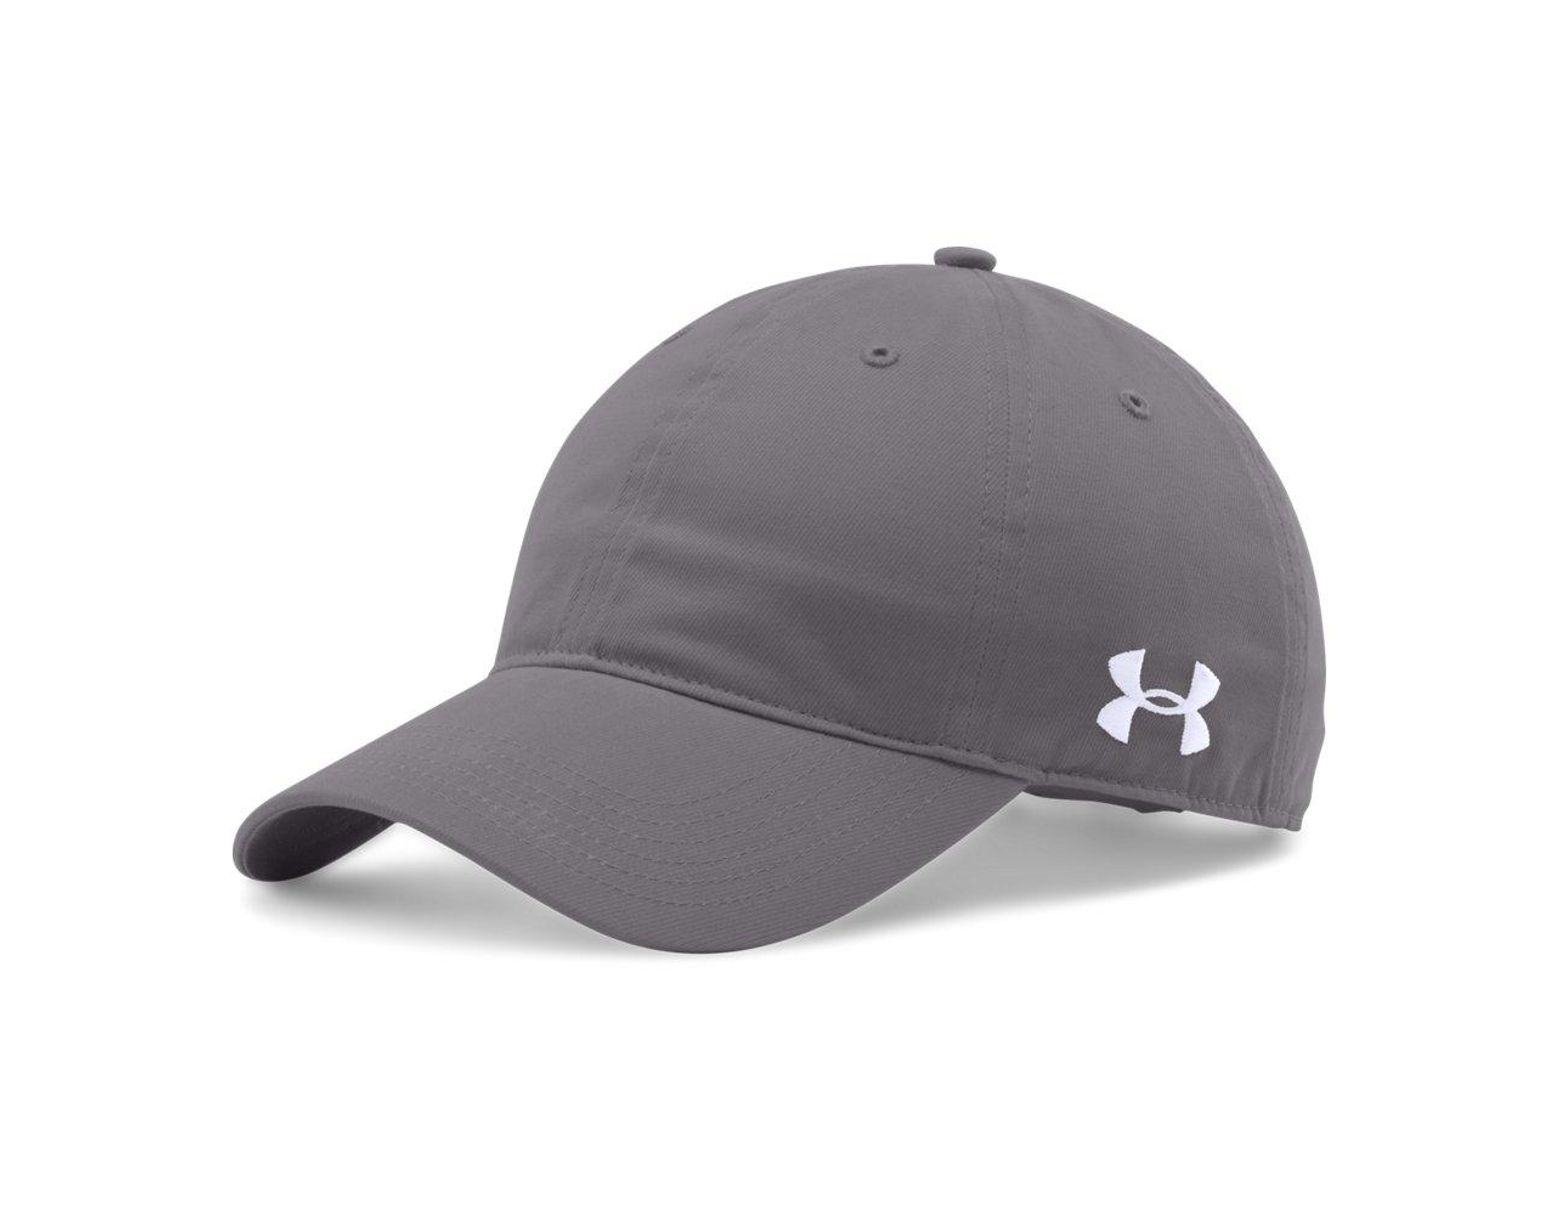 promo code f6bd9 884fd Under Armour Chino Relaxed Sport Hat Cap Osfm 1282140-040 (graphite white)  in Gray for Men - Lyst